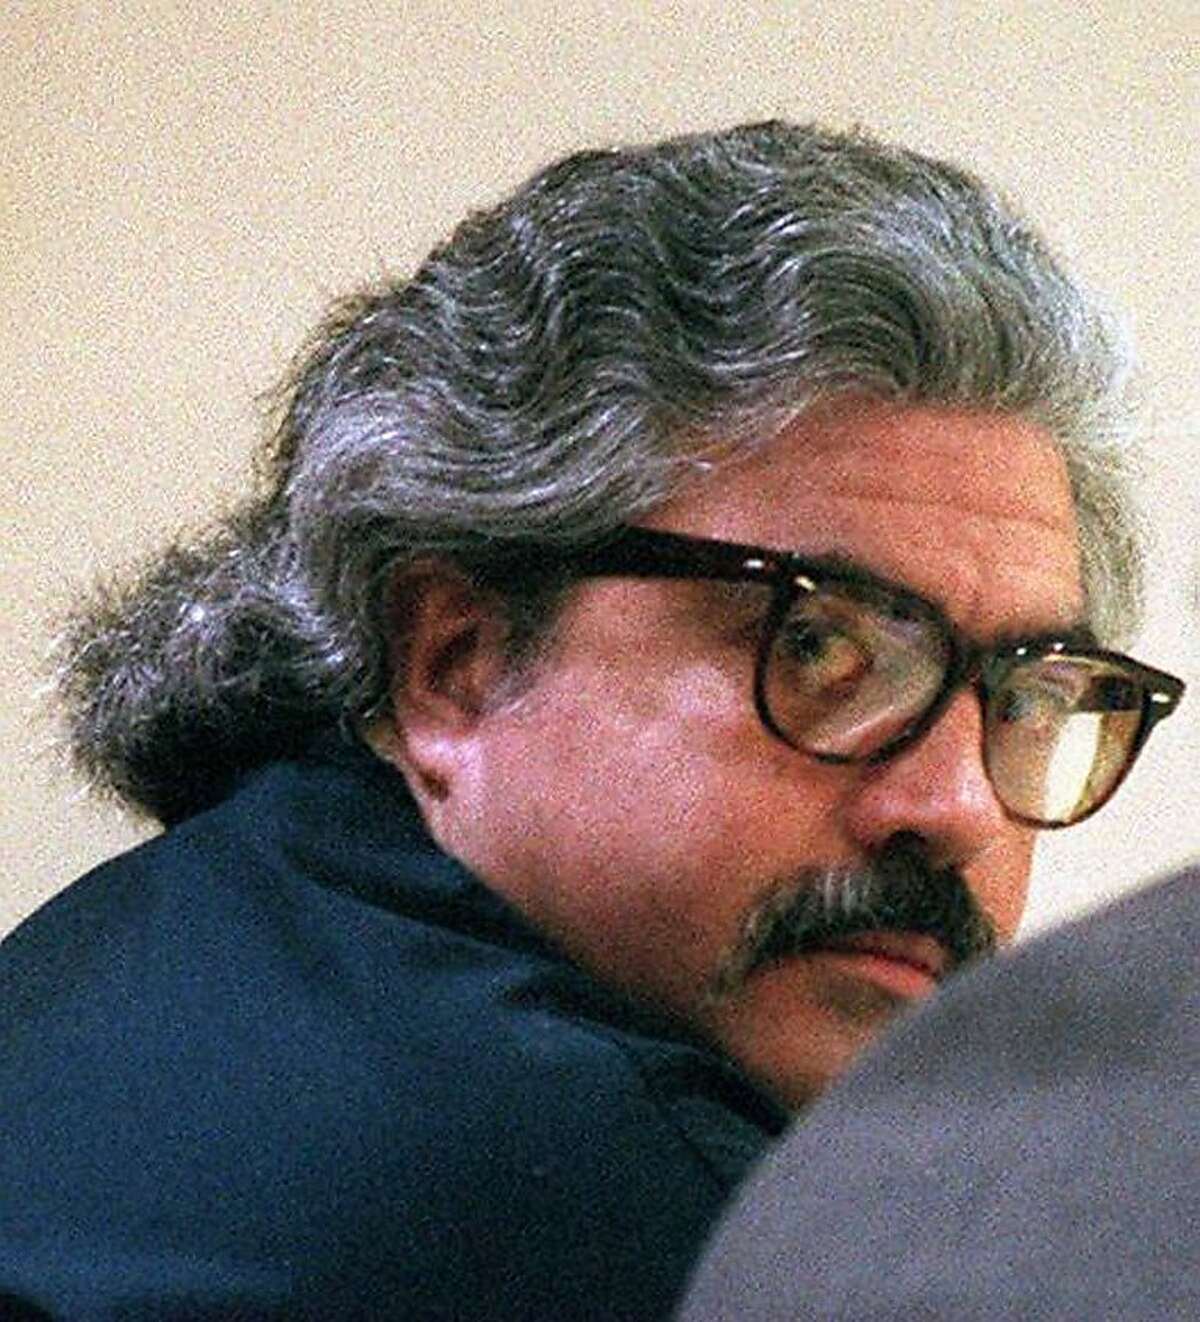 FILE--Richard Allen Davis is shown in court on May 30, 1995 in Santa Rosa, Calif. Davis is charged with the 1993 murder and kidnapping of 12-year-pld Polly Klaas of Petaluma, Calif. Monday, a judge in Sonoma County moved the trial to Santa Clara County.(AP Photo/Press Democrat,Jeff Kan Lee)